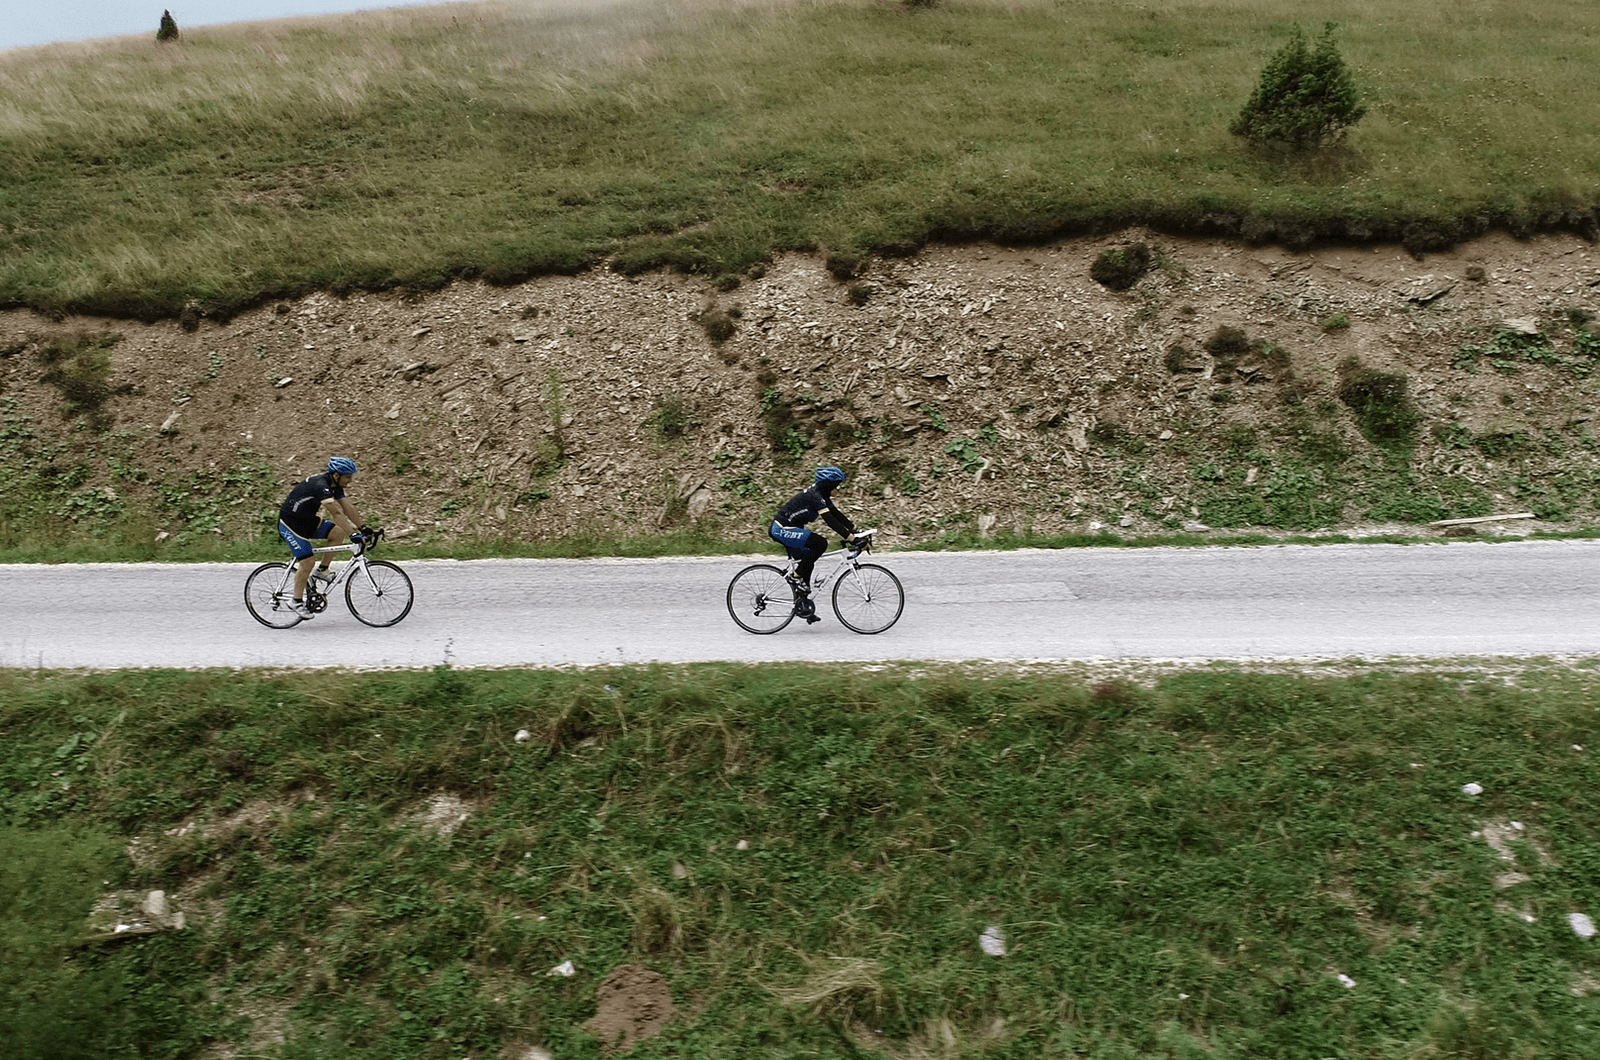 Softić (right), rides her bicycle during a triathlon.